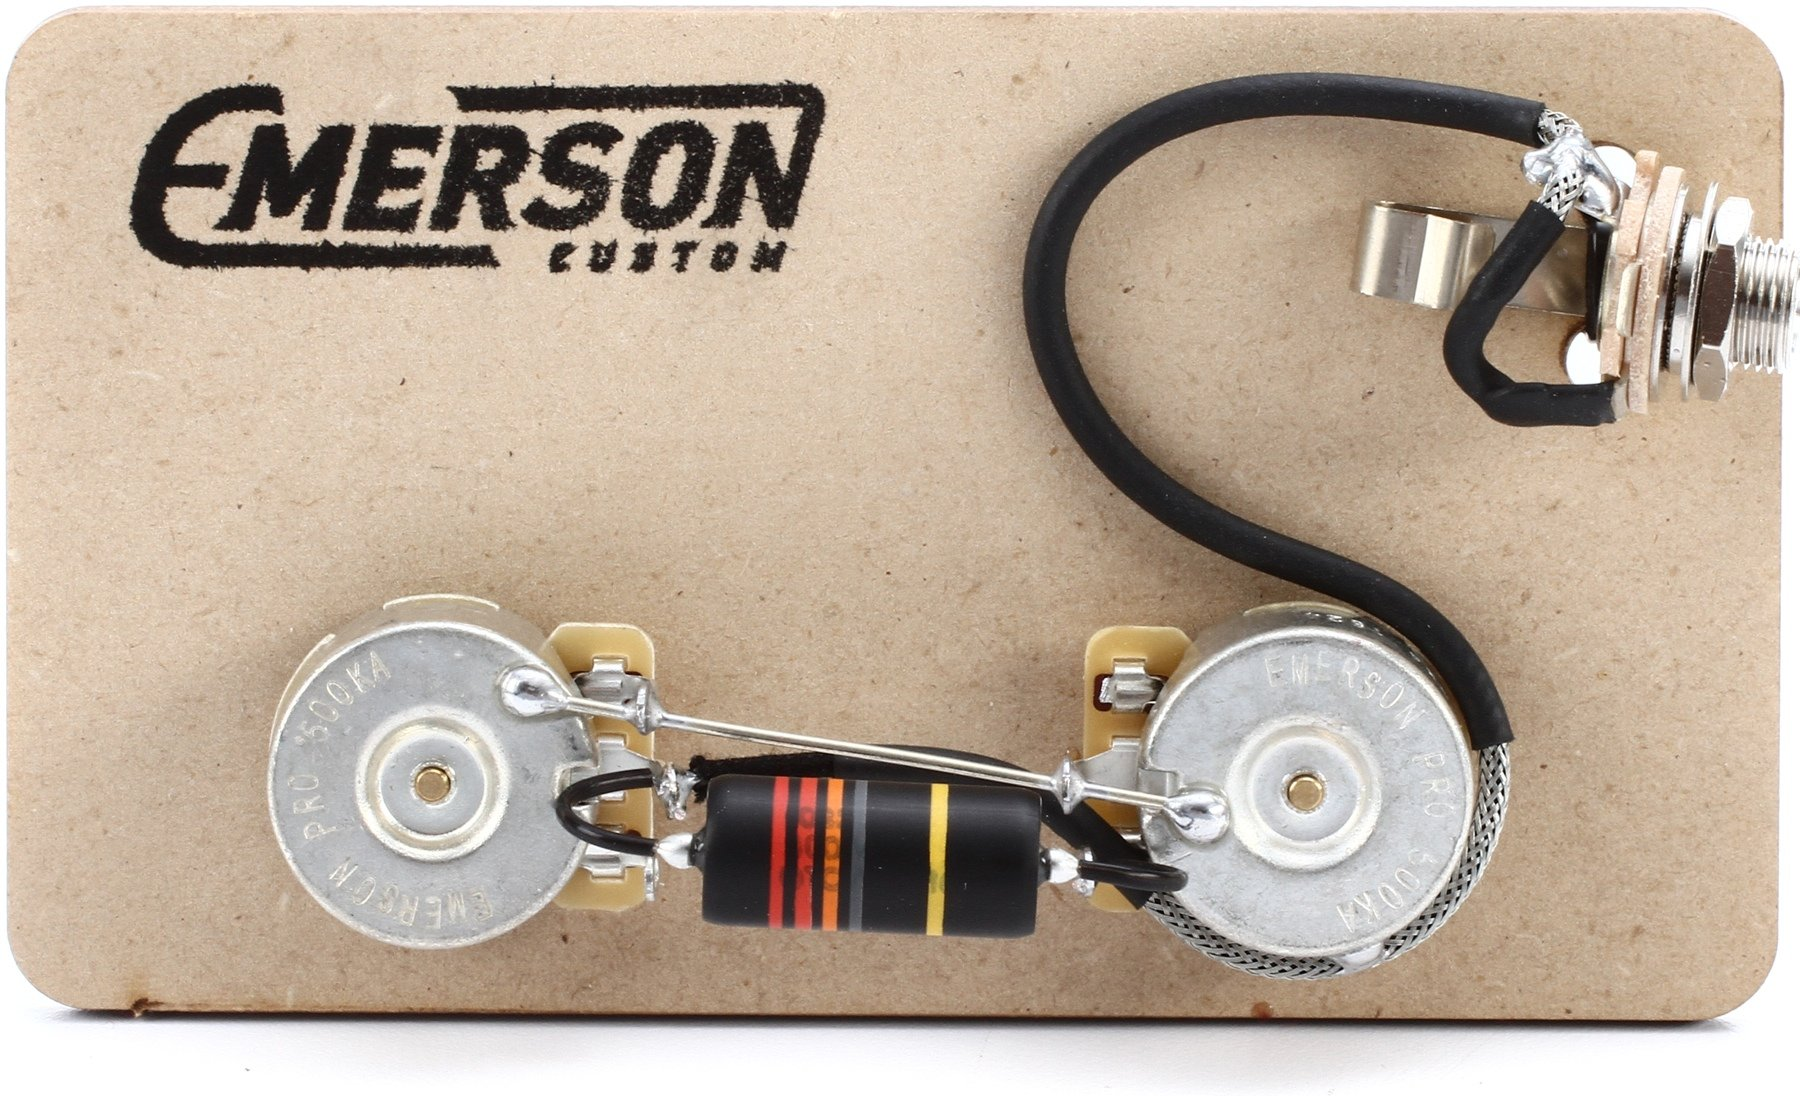 LPBBJR xlarge emerson custom prewired kit for gibson les paul junior sweetwater gibson les paul junior wiring diagram at gsmx.co